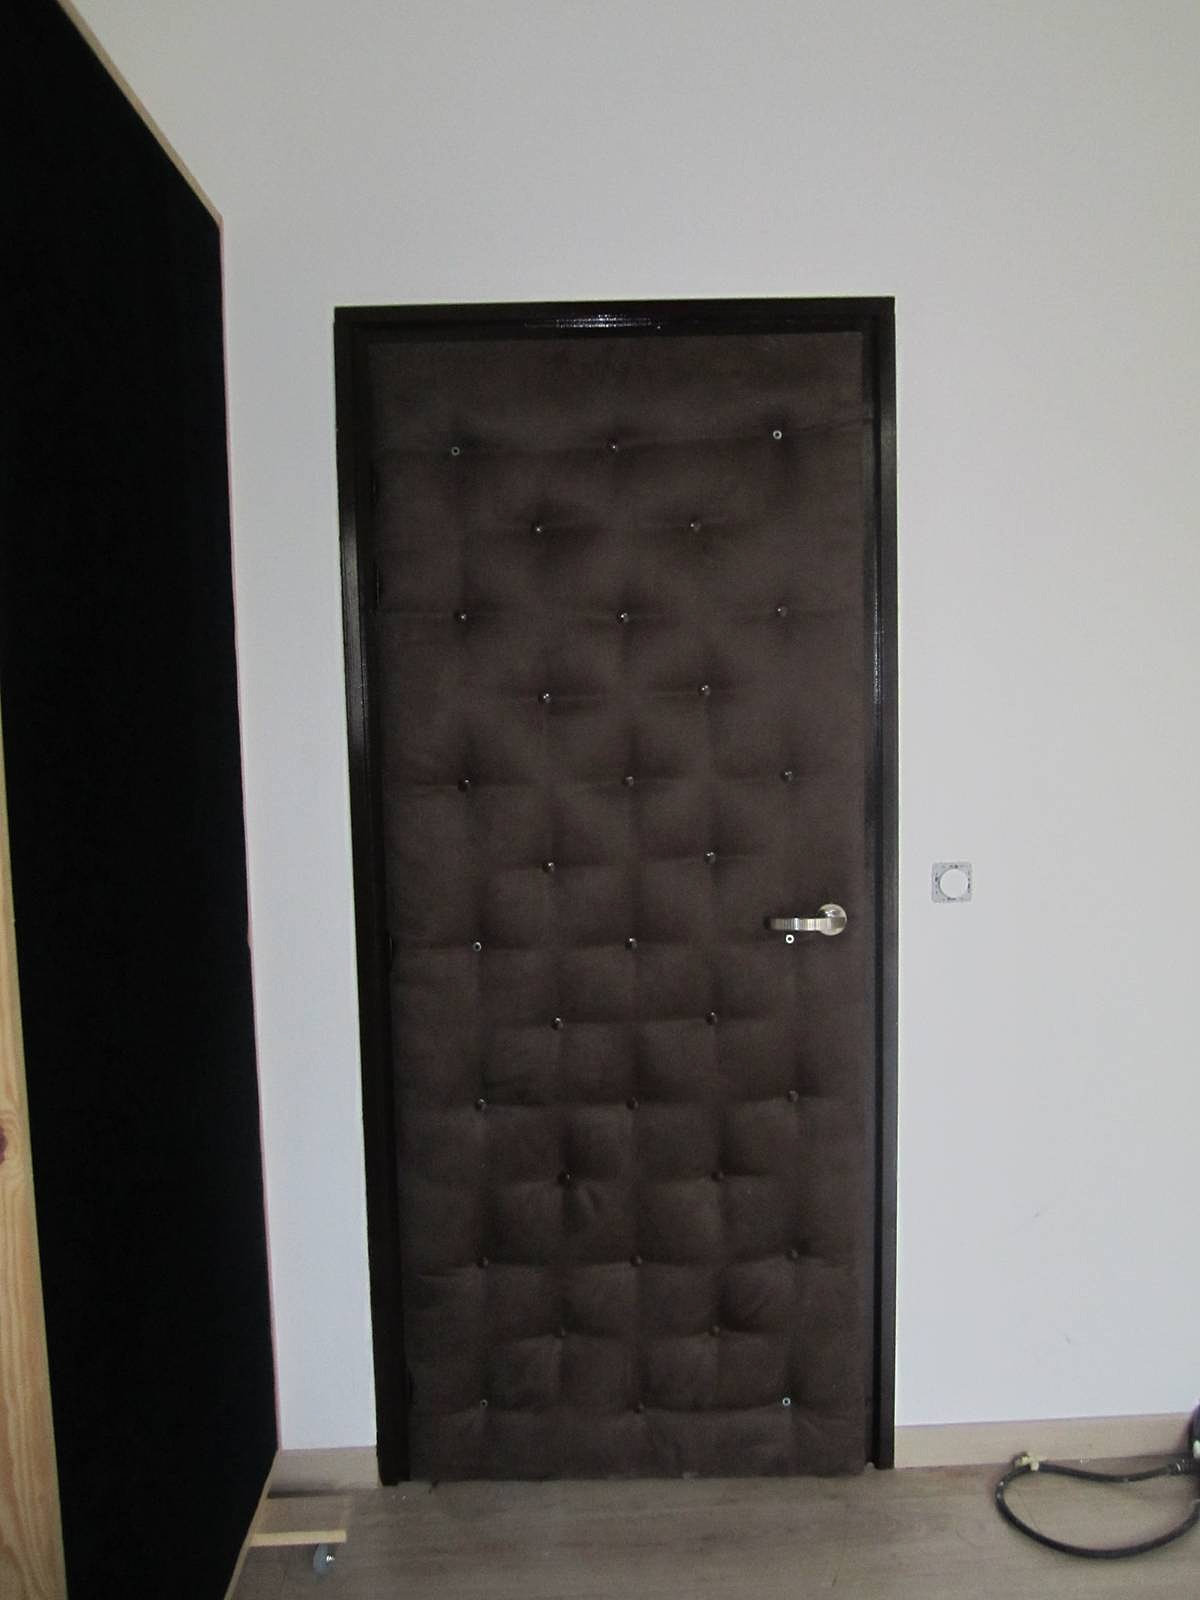 Donna design houppa d co mur capitonn cabine dj marseille paca port - Isolation acoustique porte ...